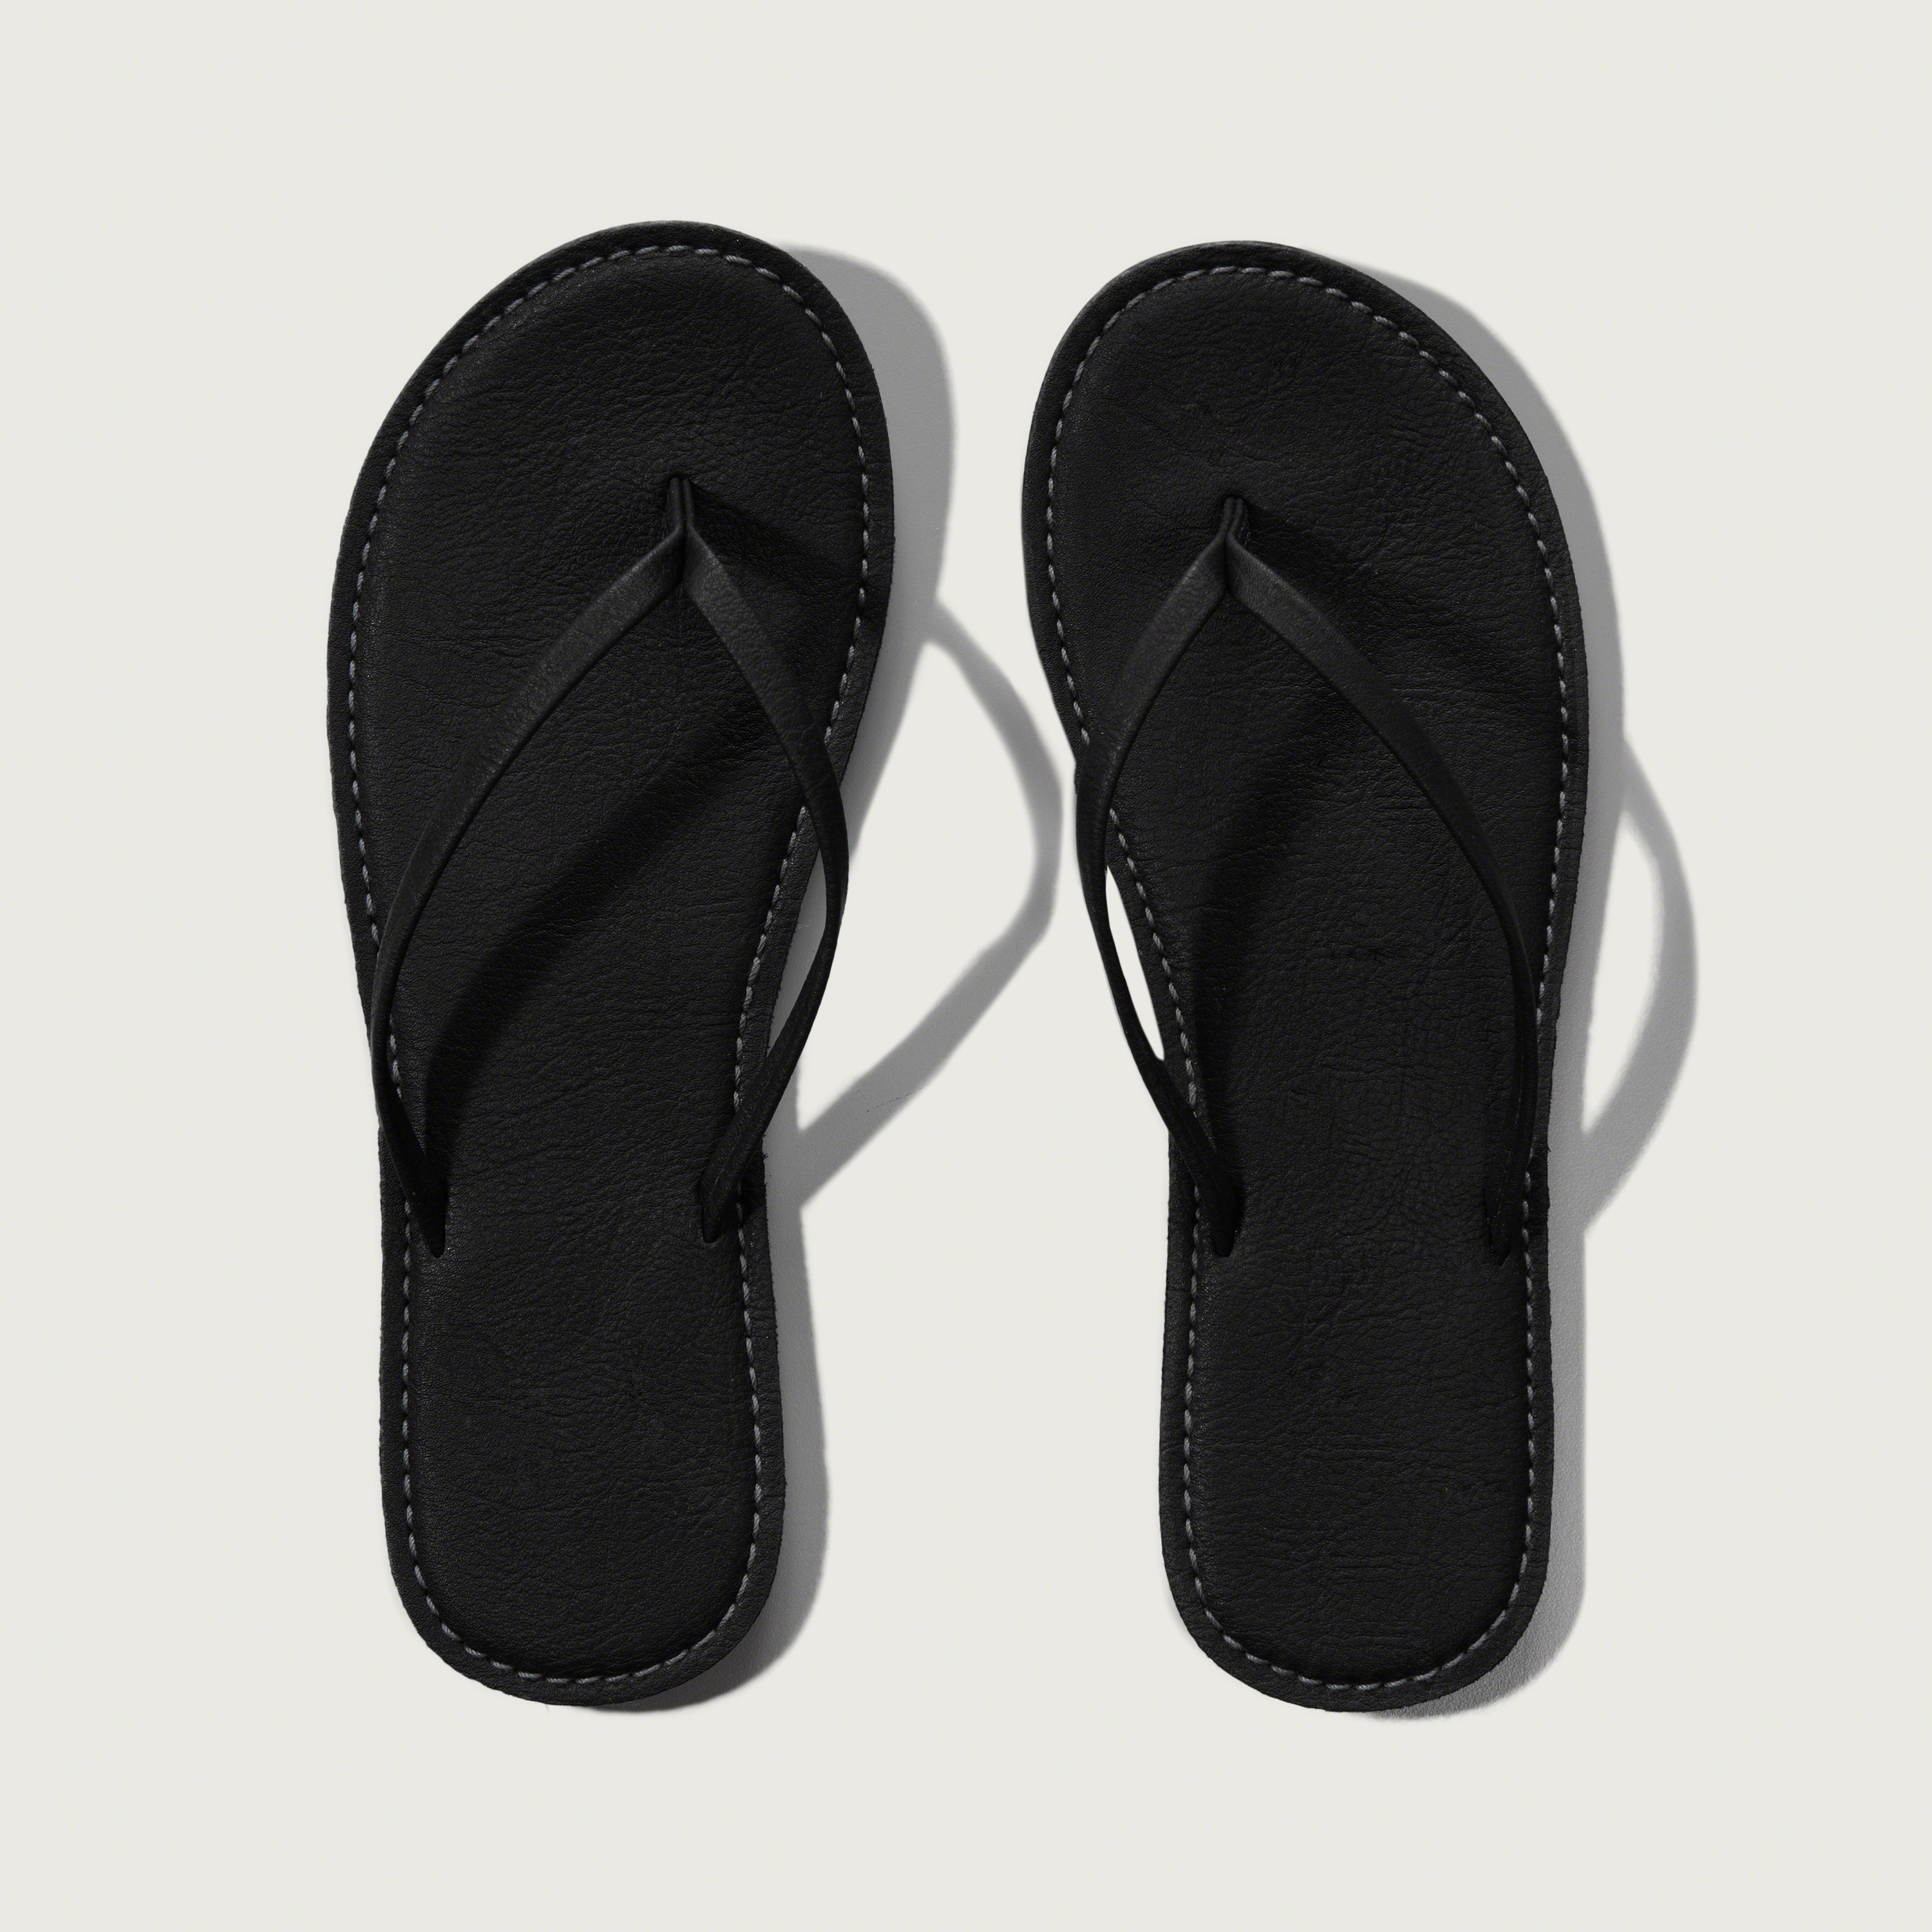 Shop Black Leather Flip Flops. Discover the latest trends at New Look.